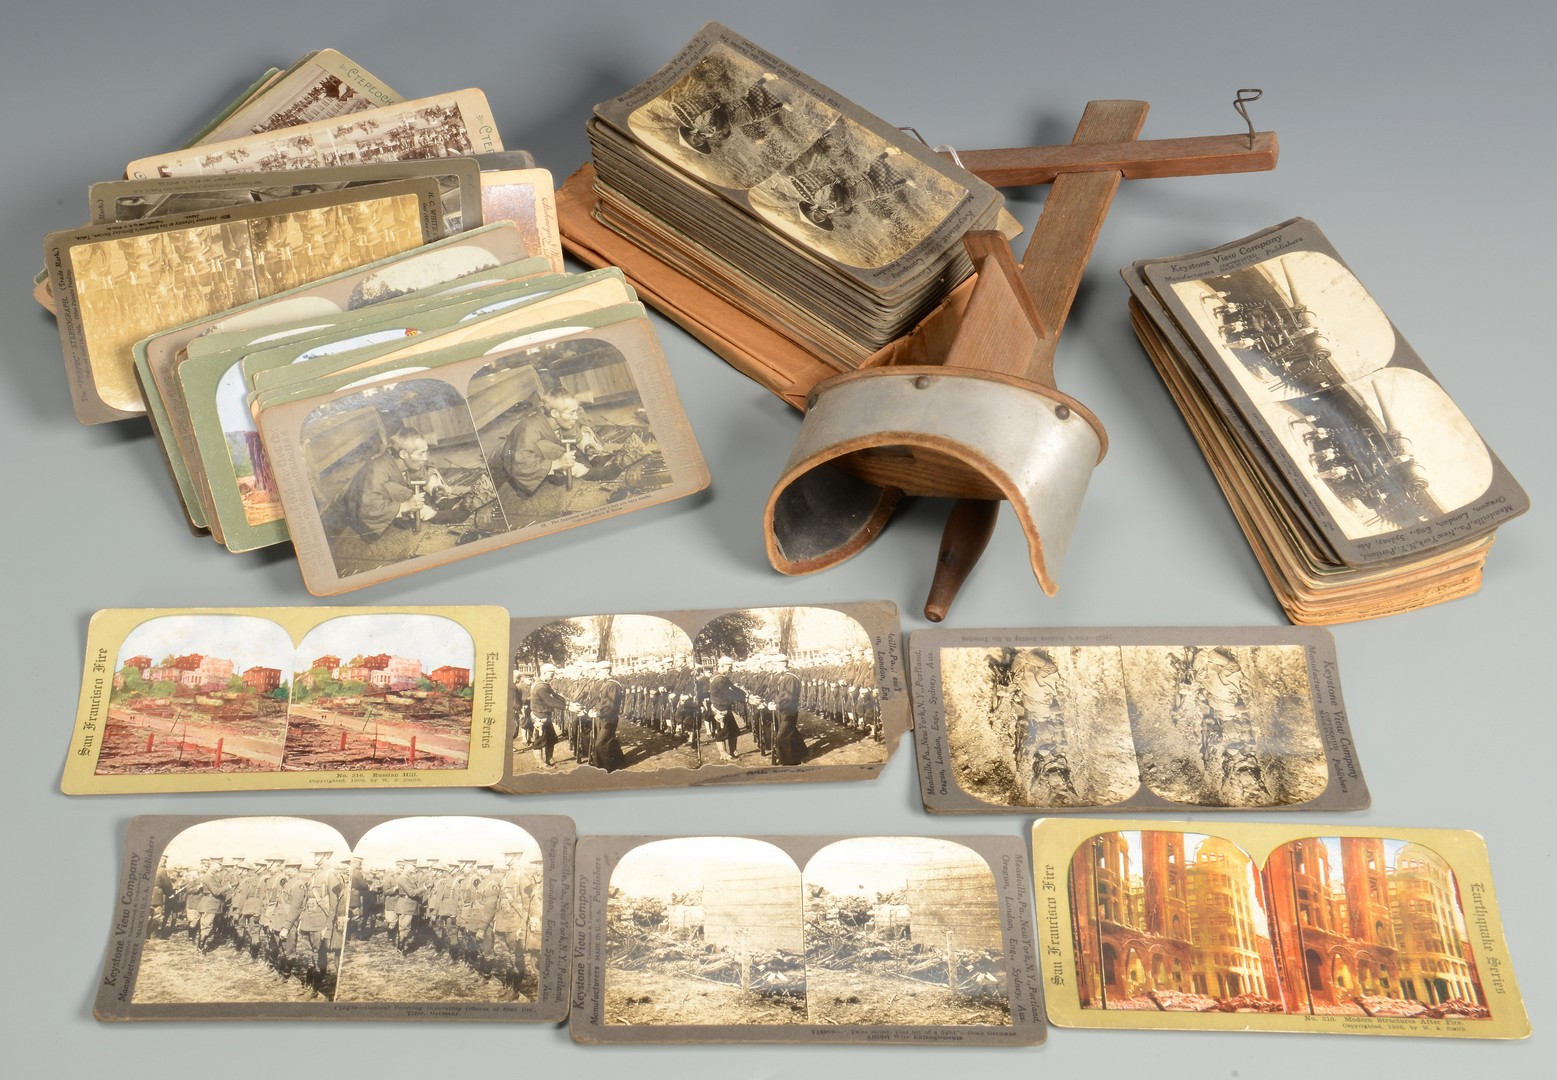 Lot 588: Vintage Novelties incl. Stereoview Slides and Books